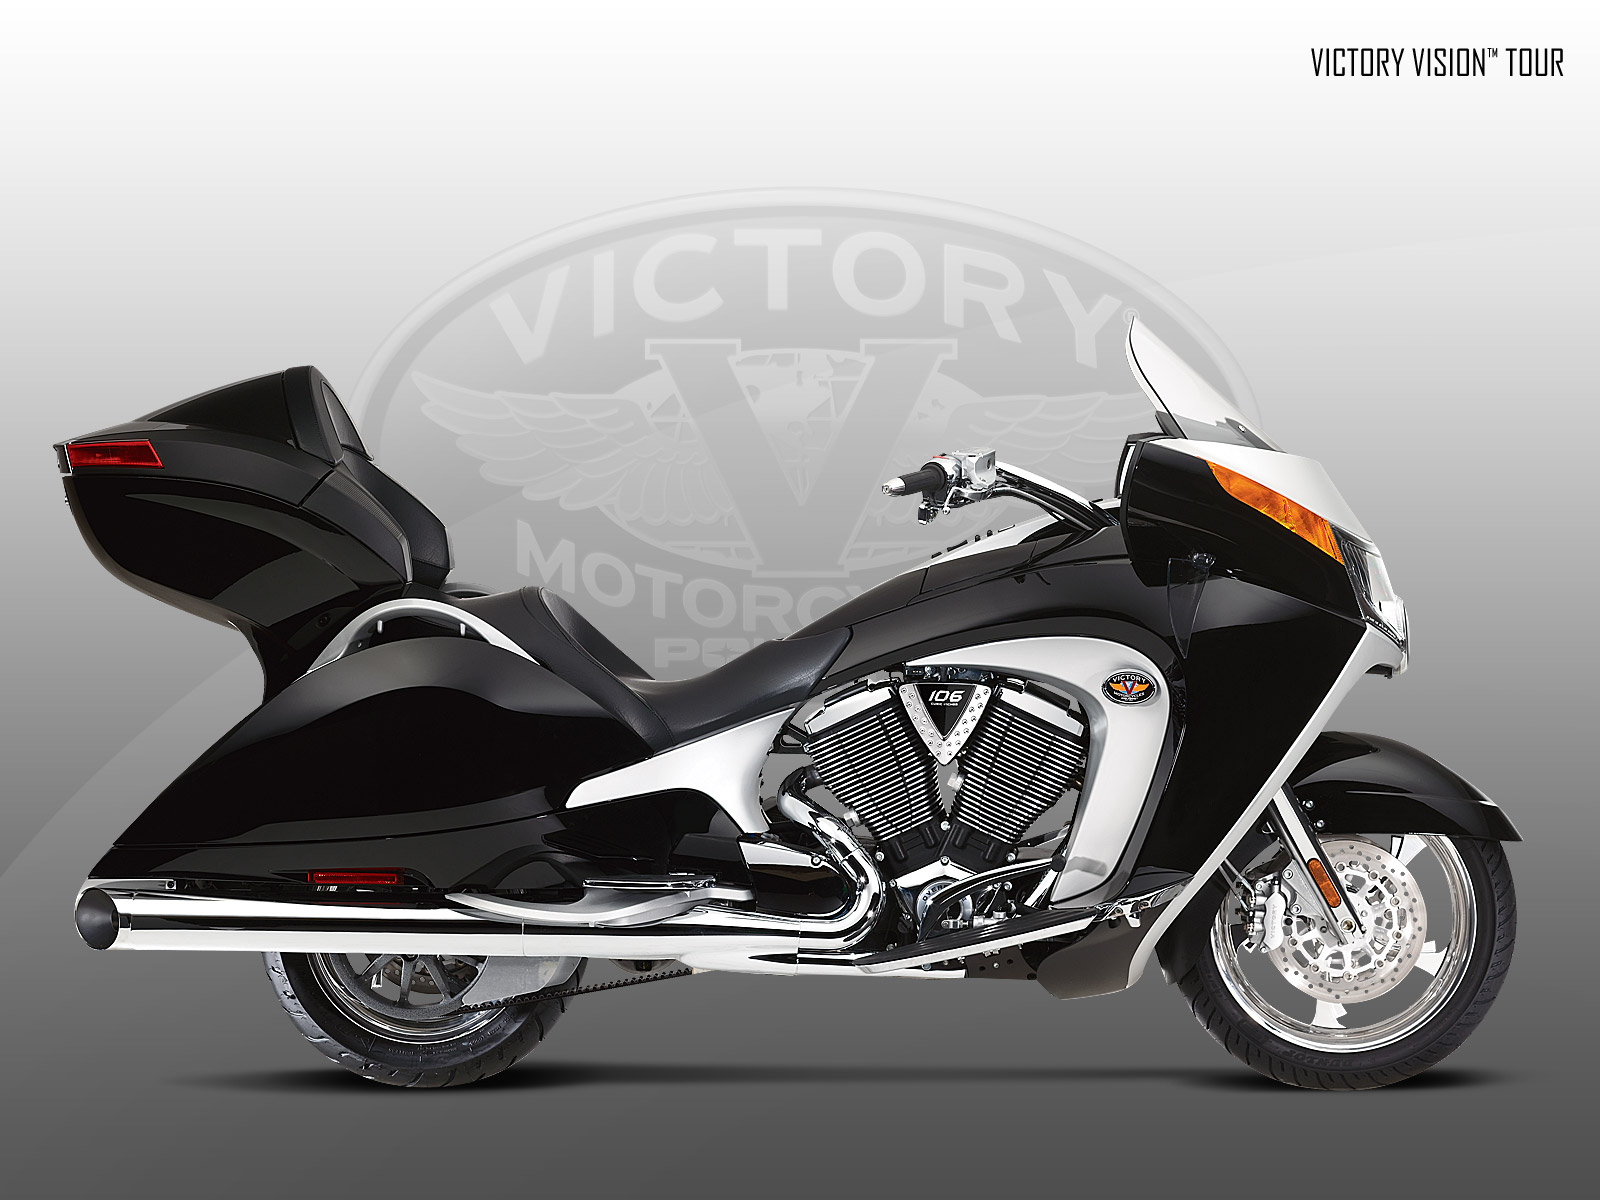 Information on Victory Vision Victory Vegas Victory Kingpin Victory 1600x1200